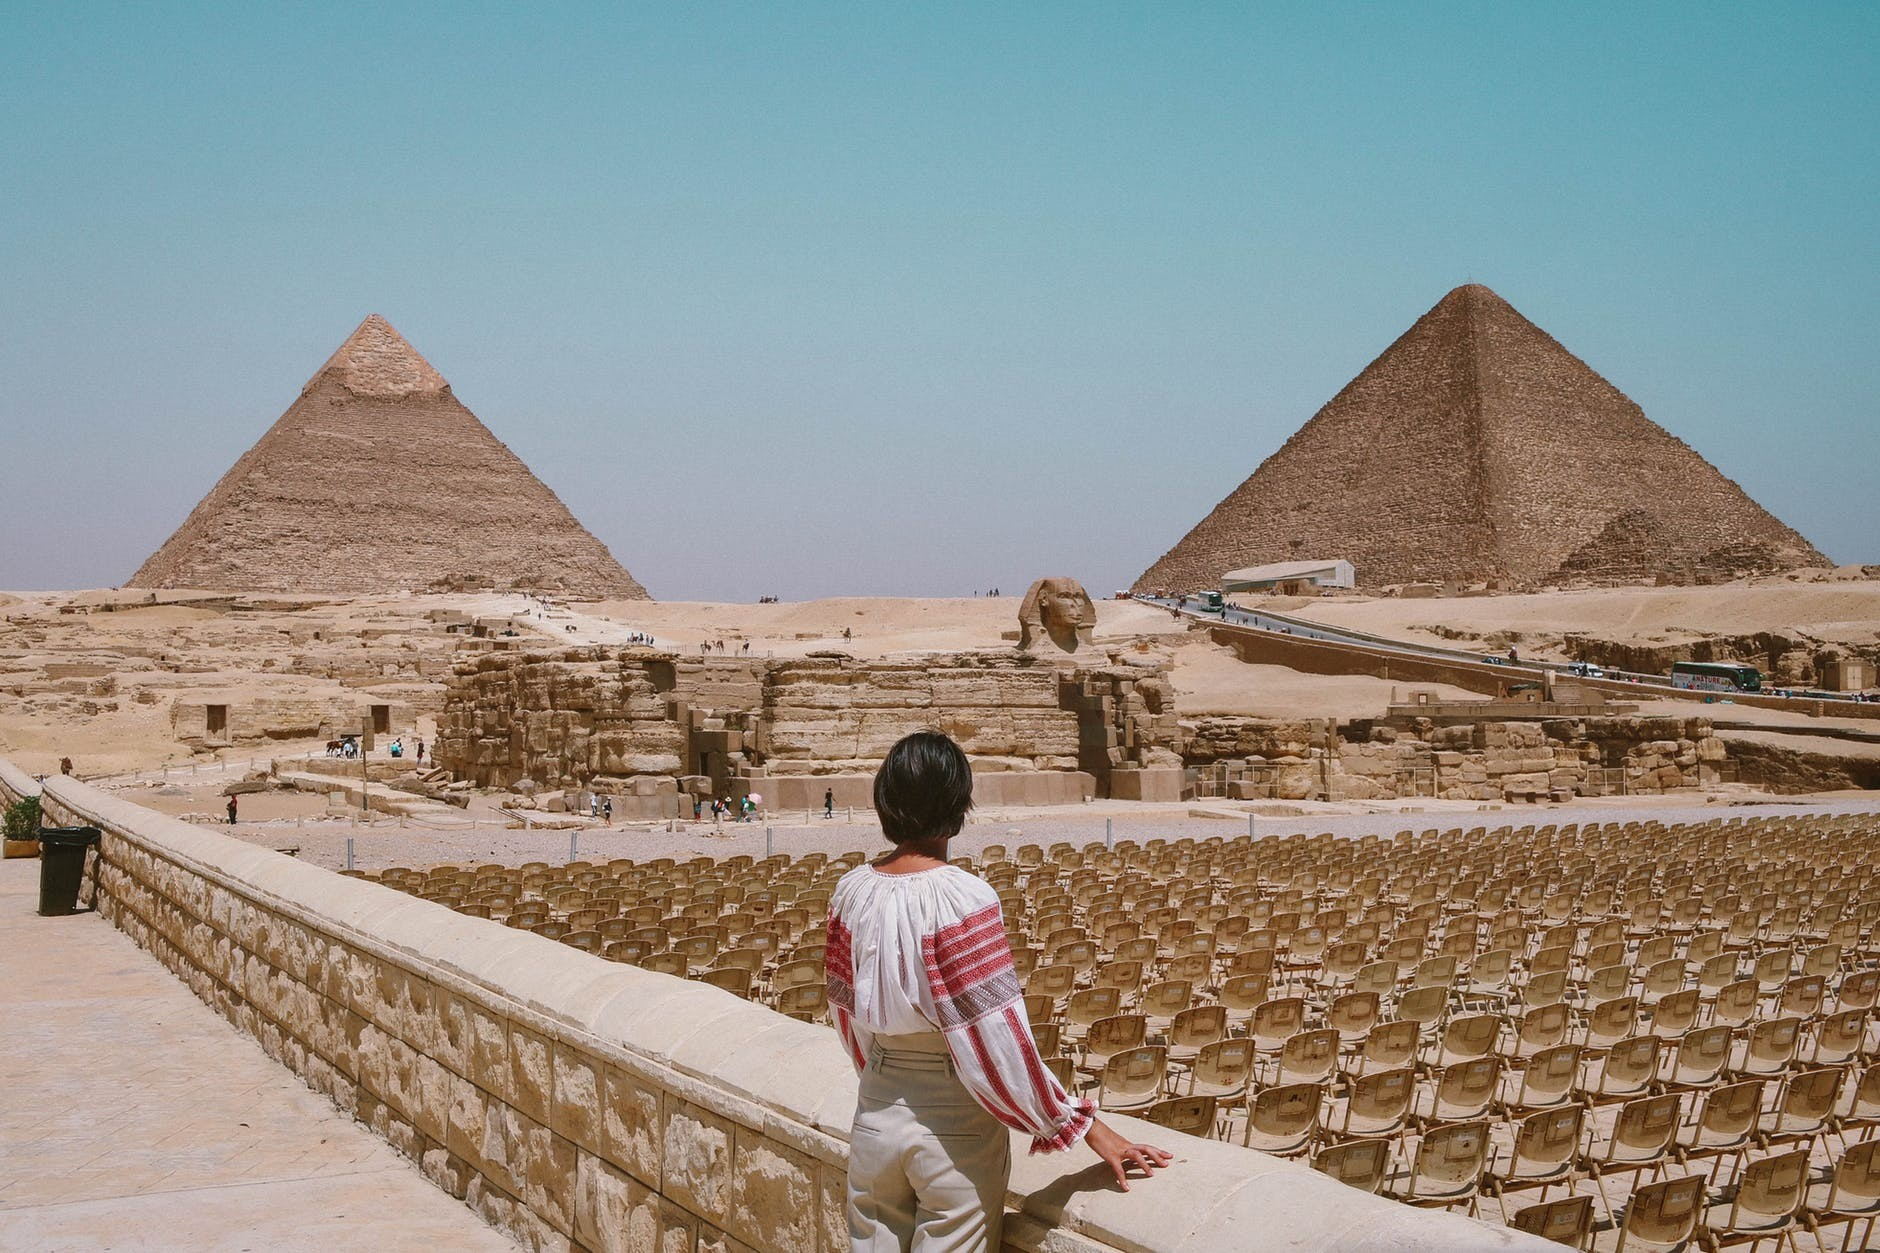 Day Trip to Cairo Highlights from Hurghada by Plane